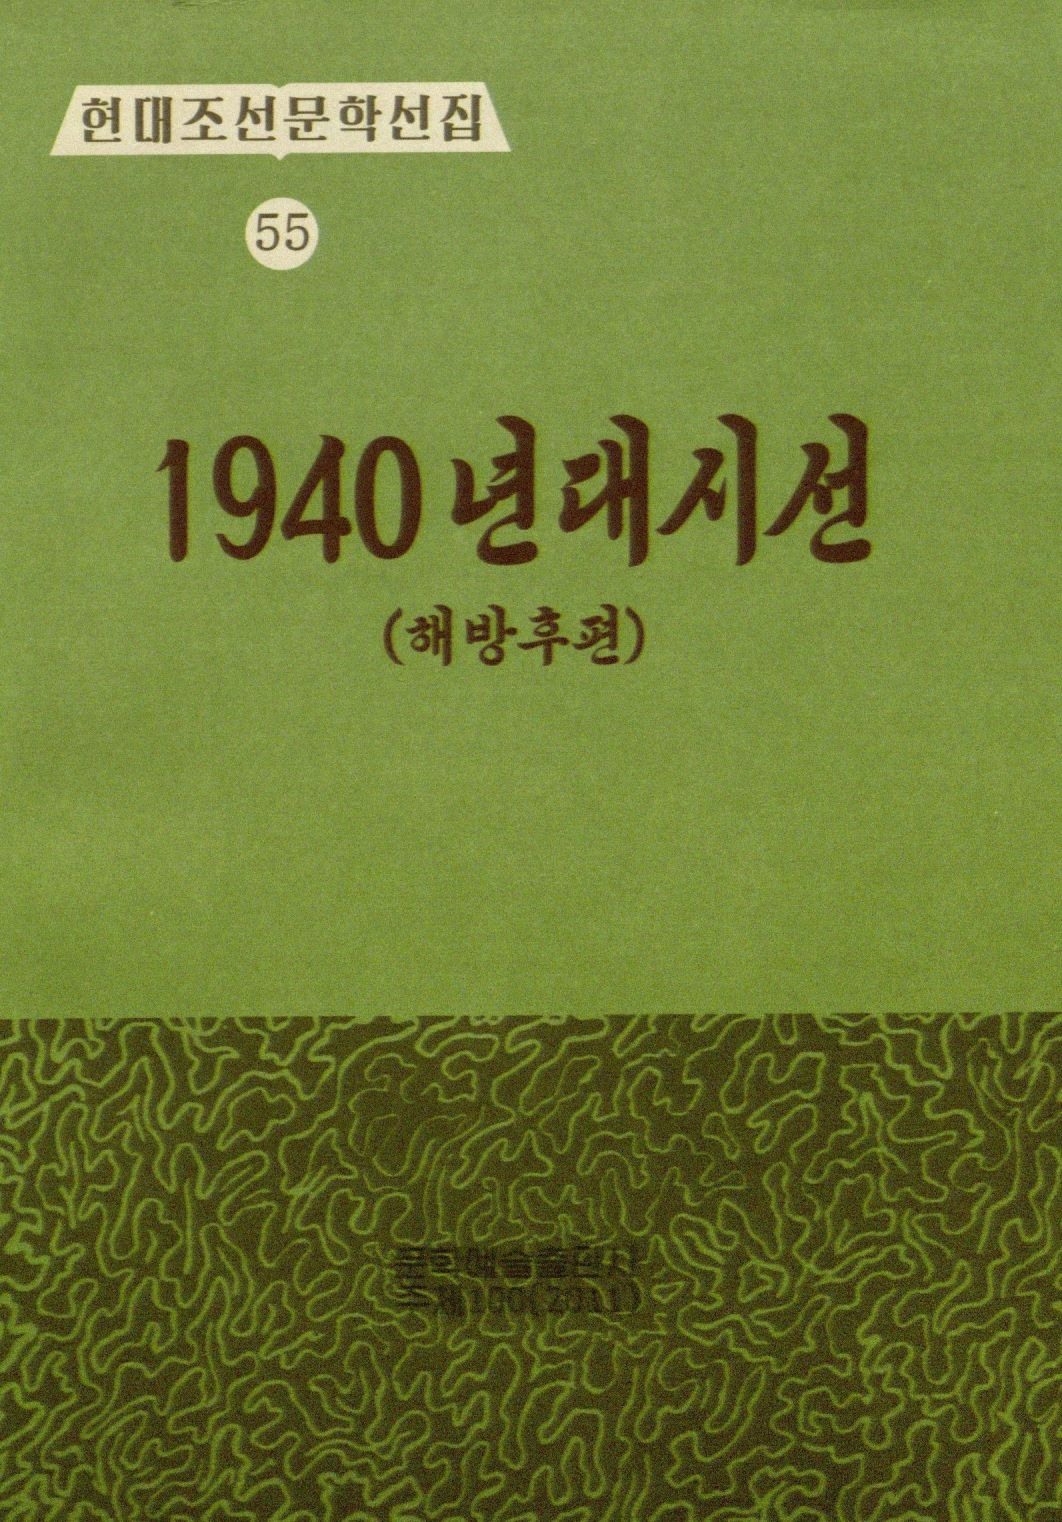 title page of 1940년대 시선